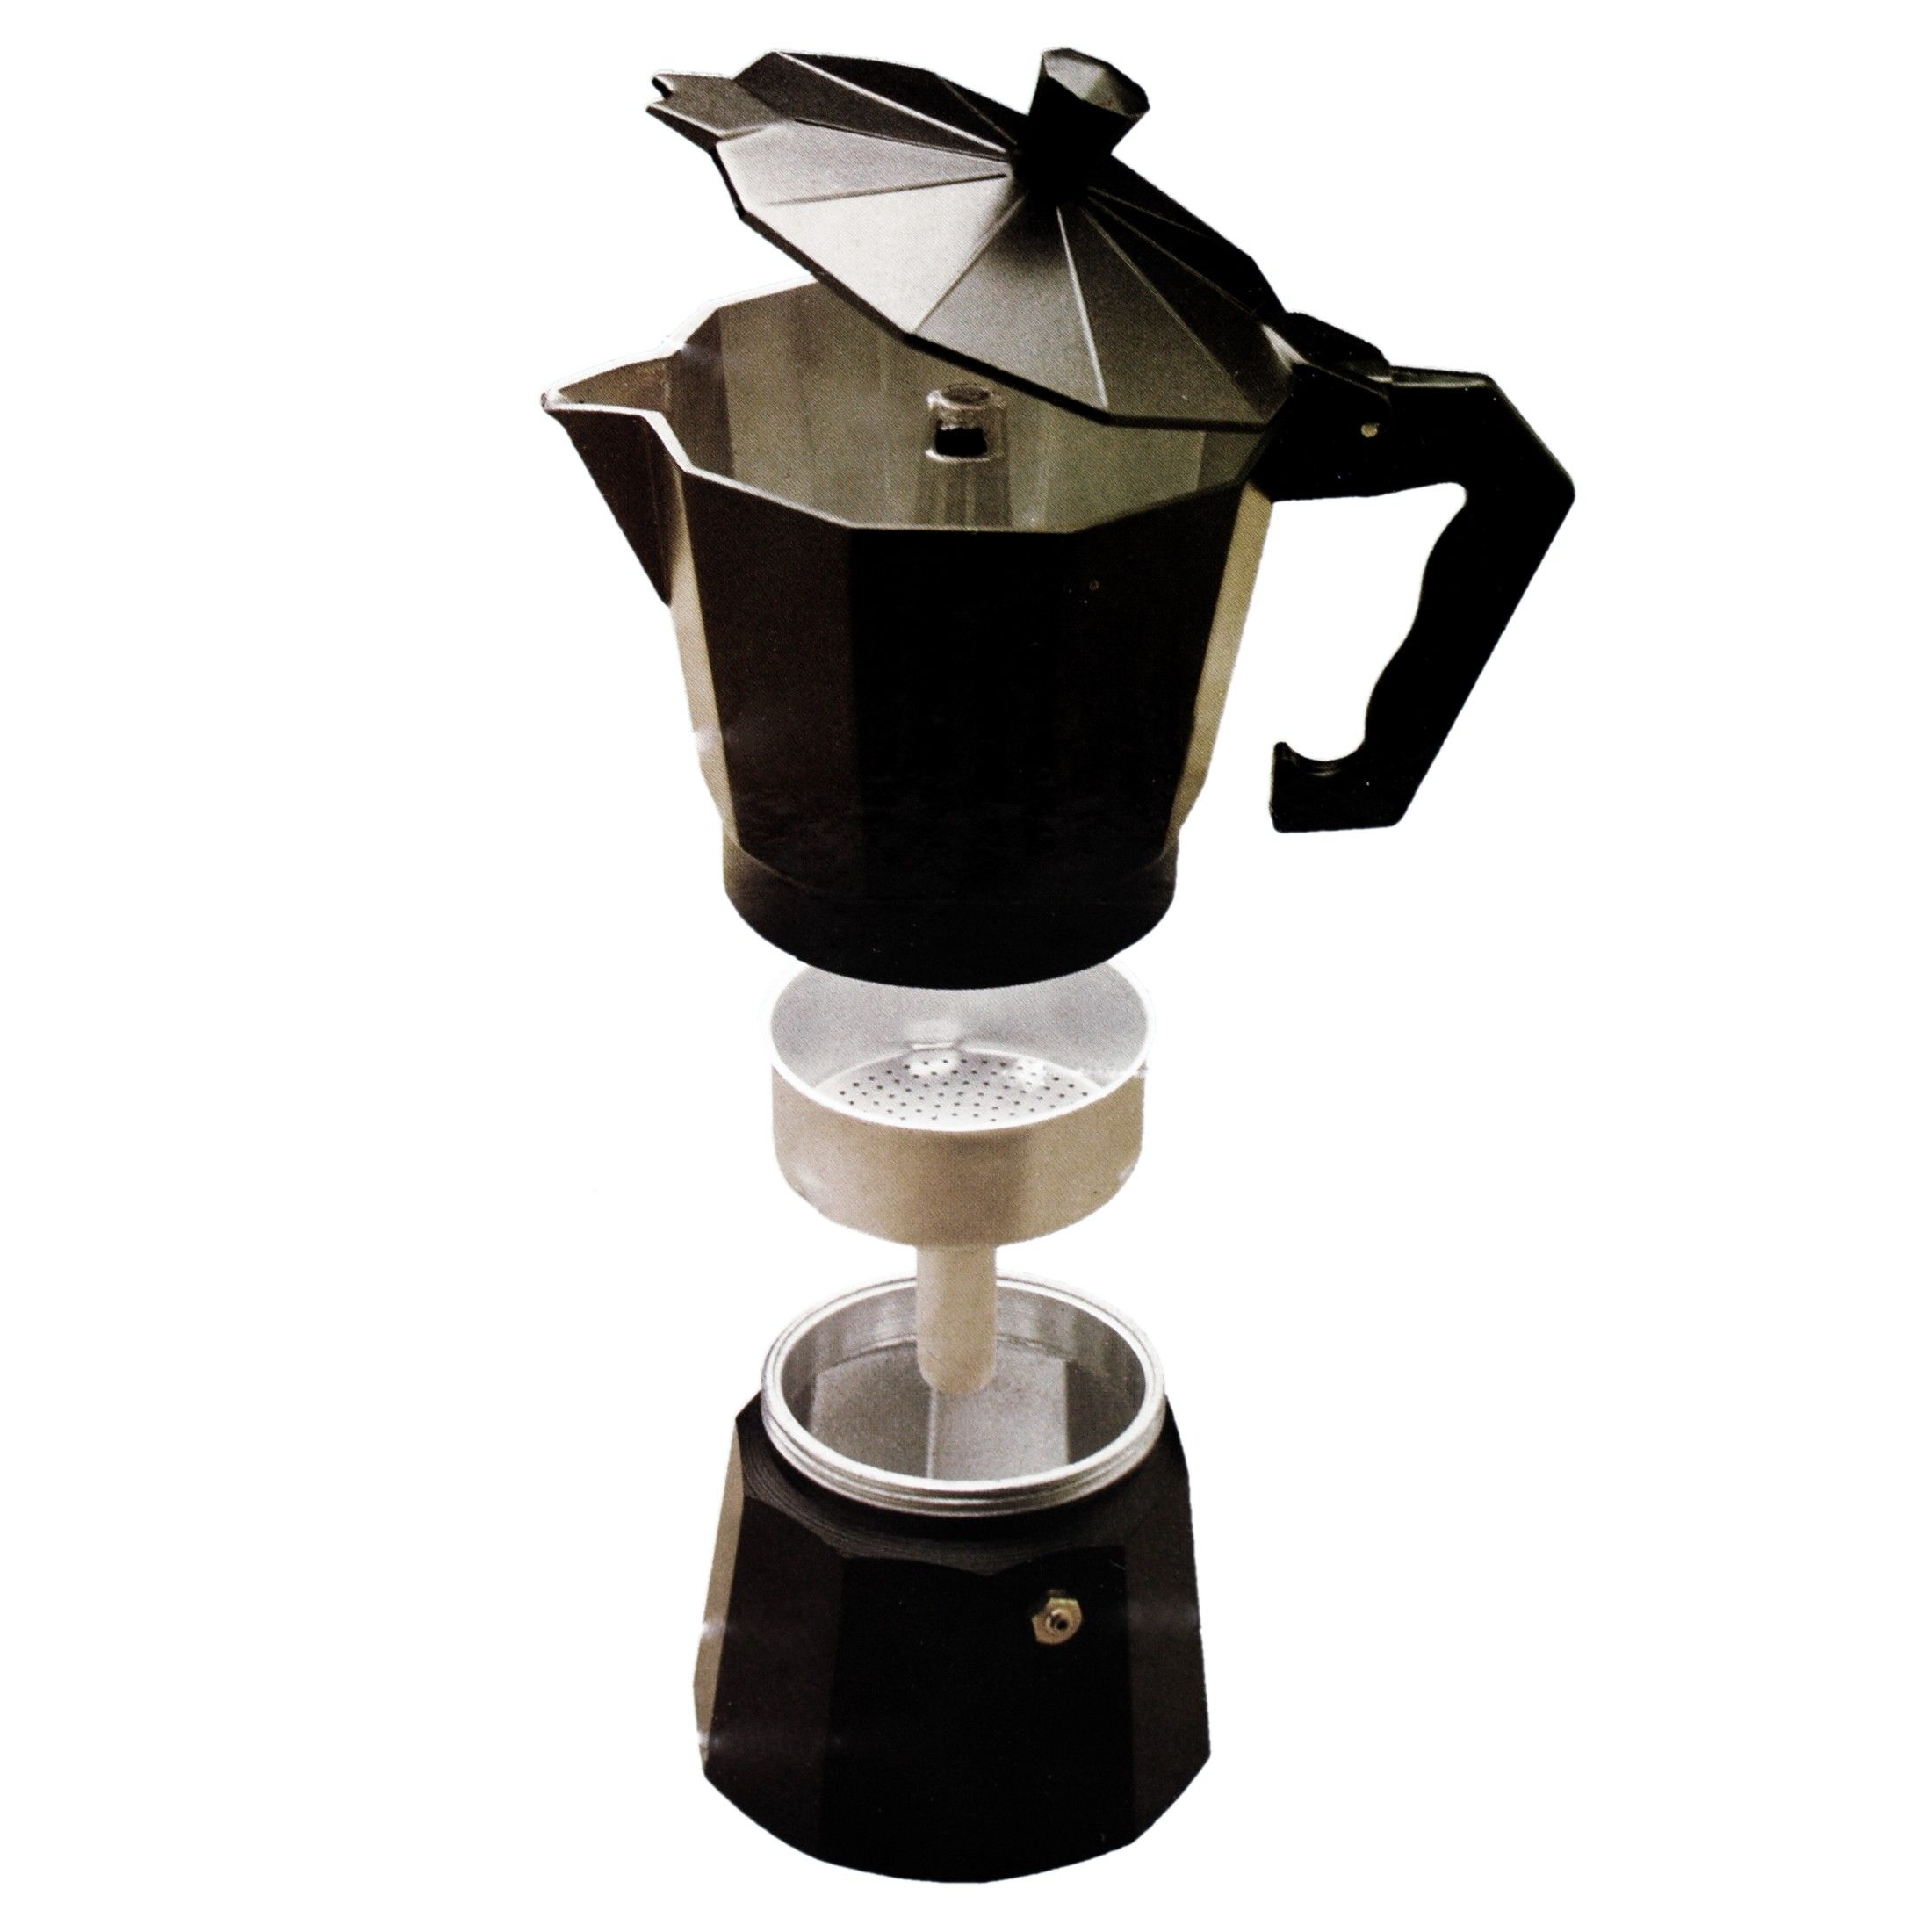 Mexican Fiesta Black Coffee And Espresso Maker, 6 Cup